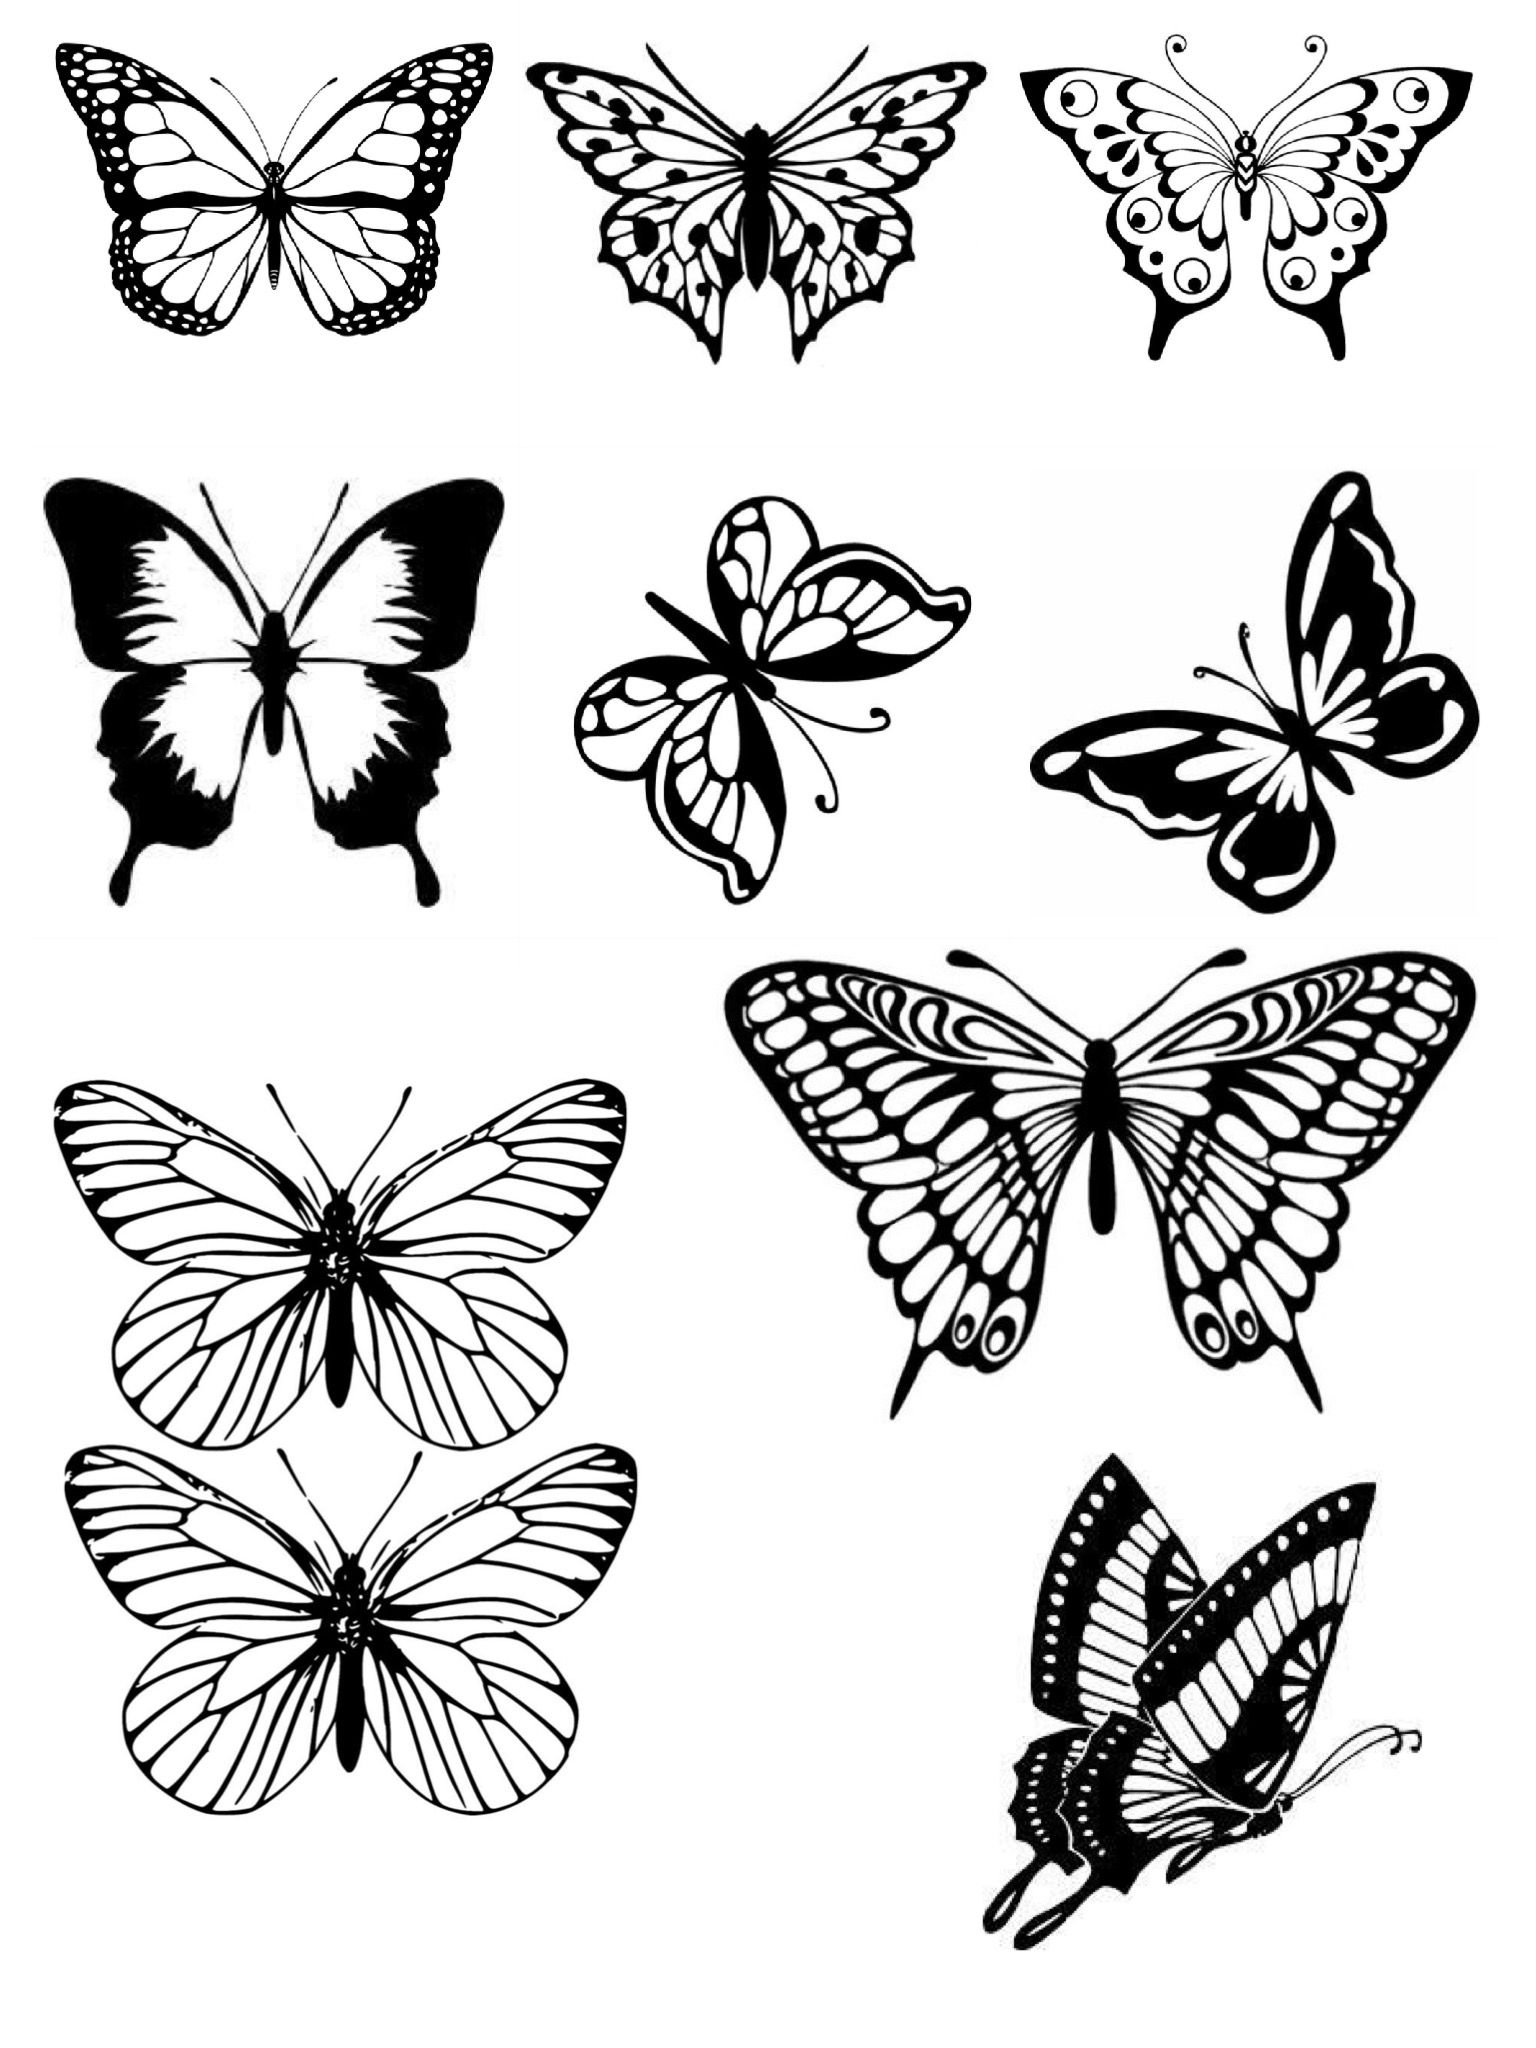 small butterfly coloring pages free butterfly stencil monarch butterfly outline and coloring pages small butterfly